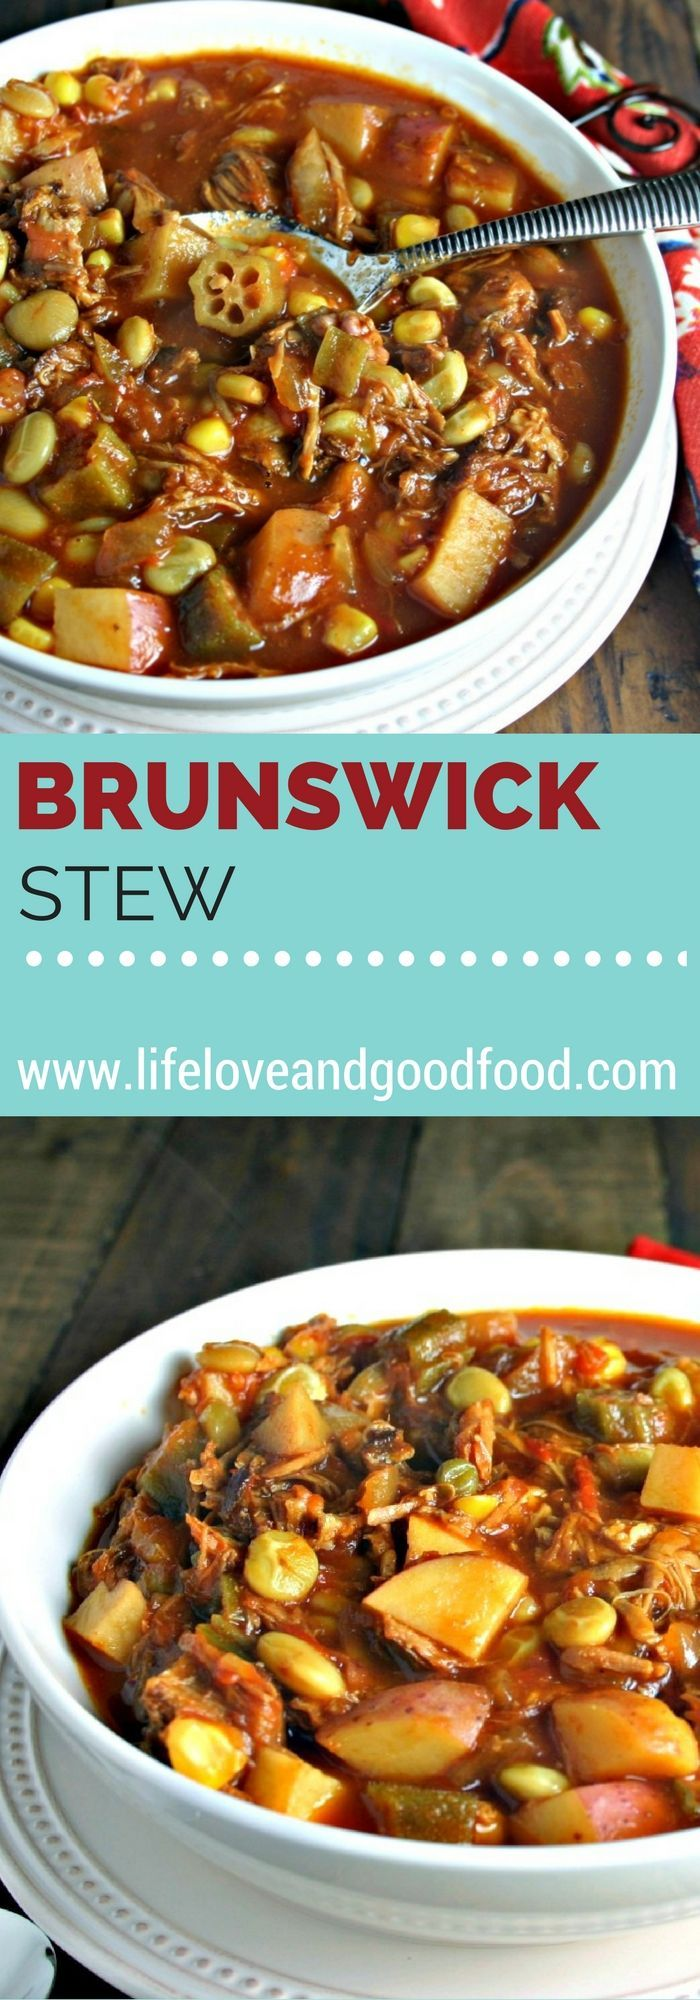 Easy Brunswick Stew | Life, Love, and Good Food: http://lifeloveandgoodfood.com/easy-brunswick-stew/